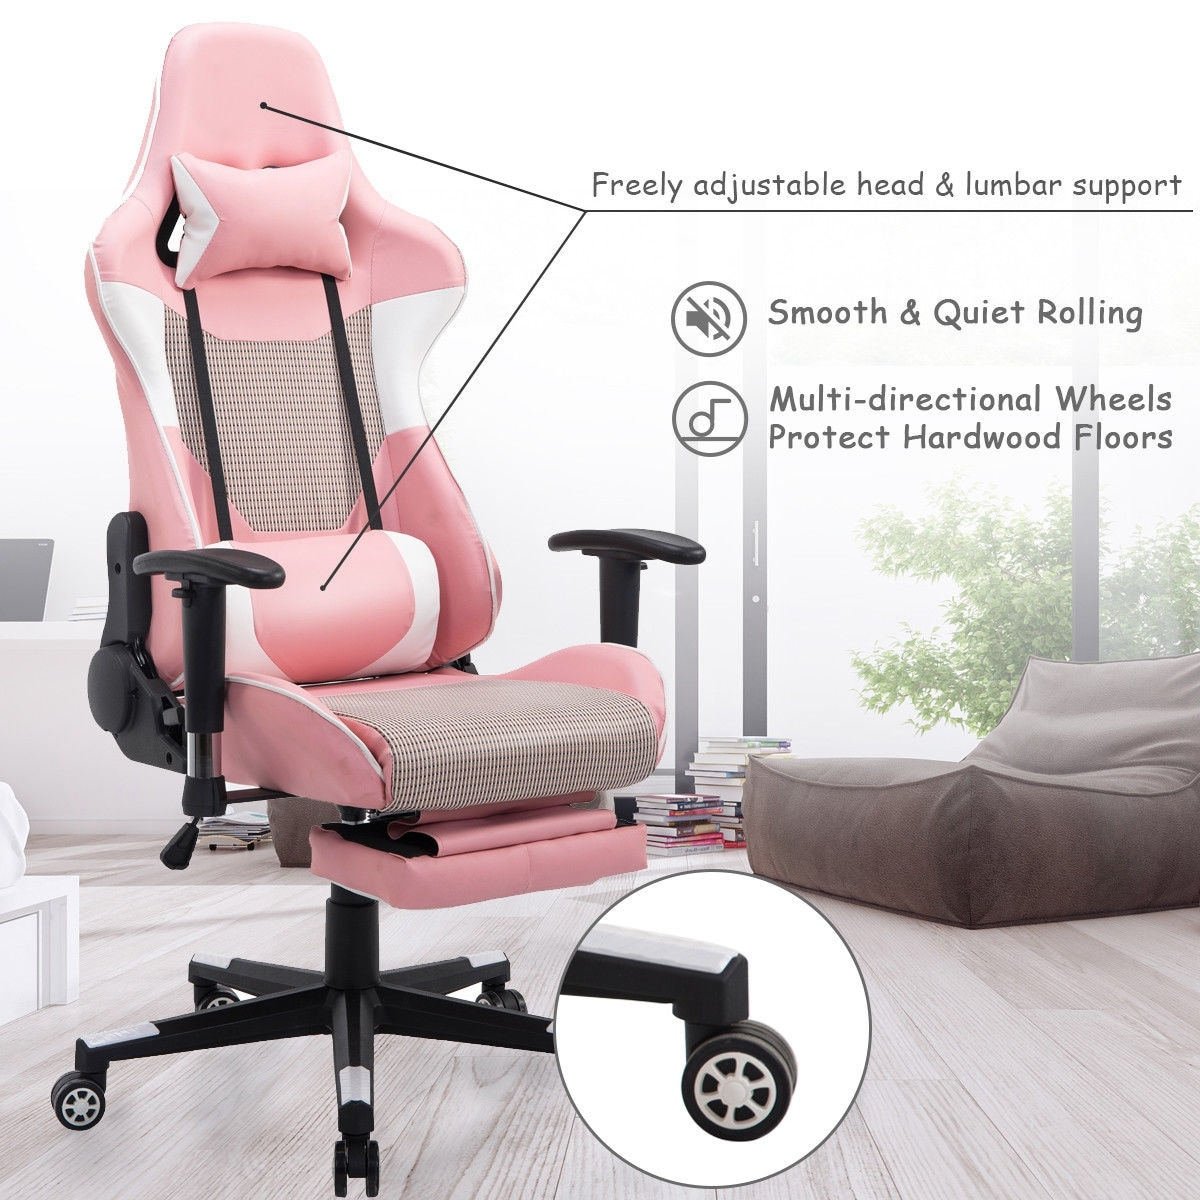 Shop Costway Ergonomic Gaming Chair High Back Racing Office Chair W/Lumbar  Support U0026 Footrest   Free Shipping Today   Overstock.com   18730559